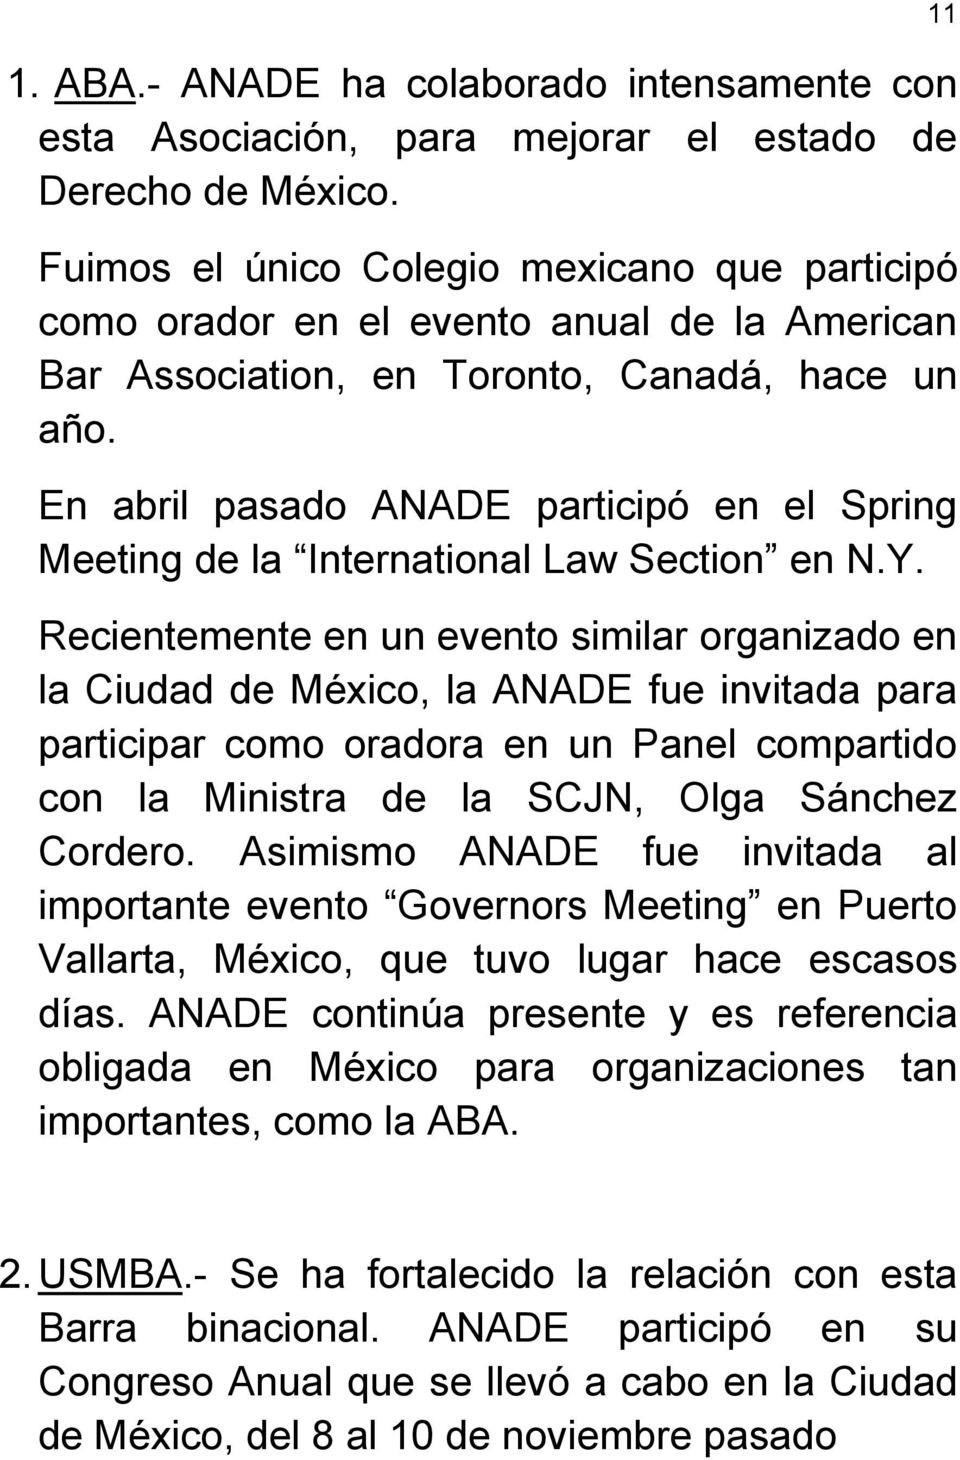 En abril pasado ANADE participó en el Spring Meeting de la International Law Section en N.Y.